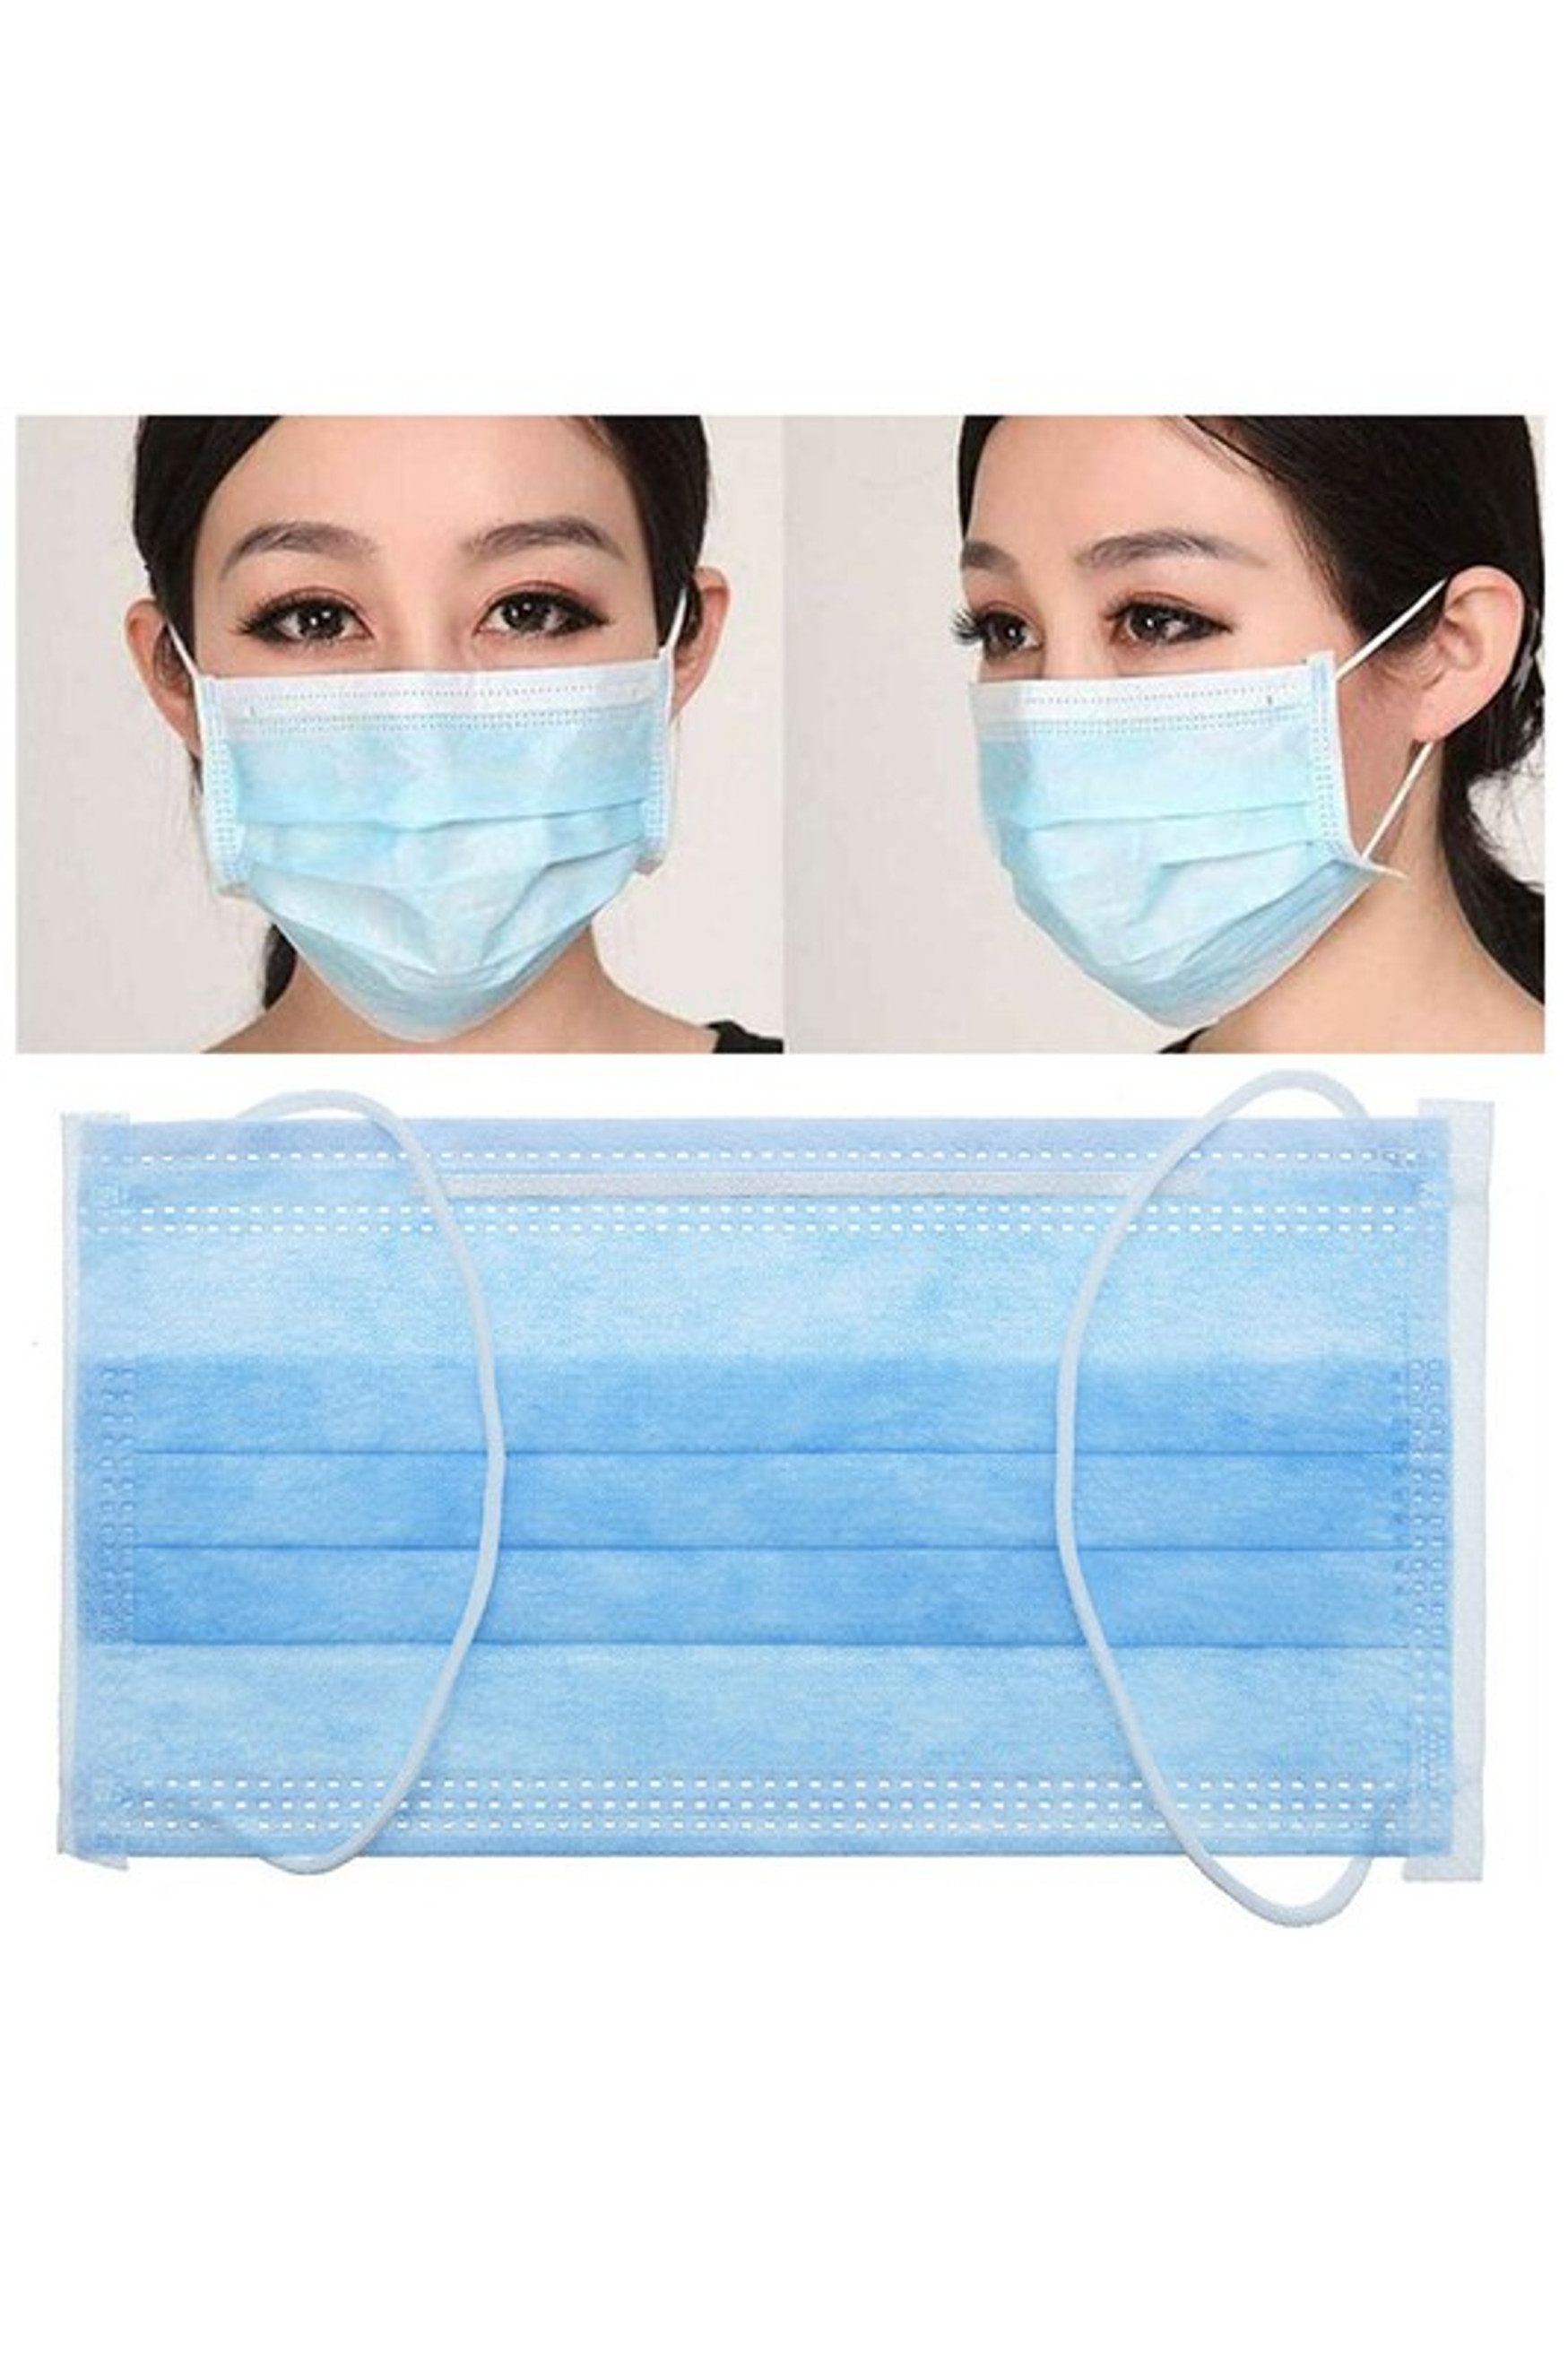 2 Single Use Disposable Face Masks - Wrapped in Packs of 2